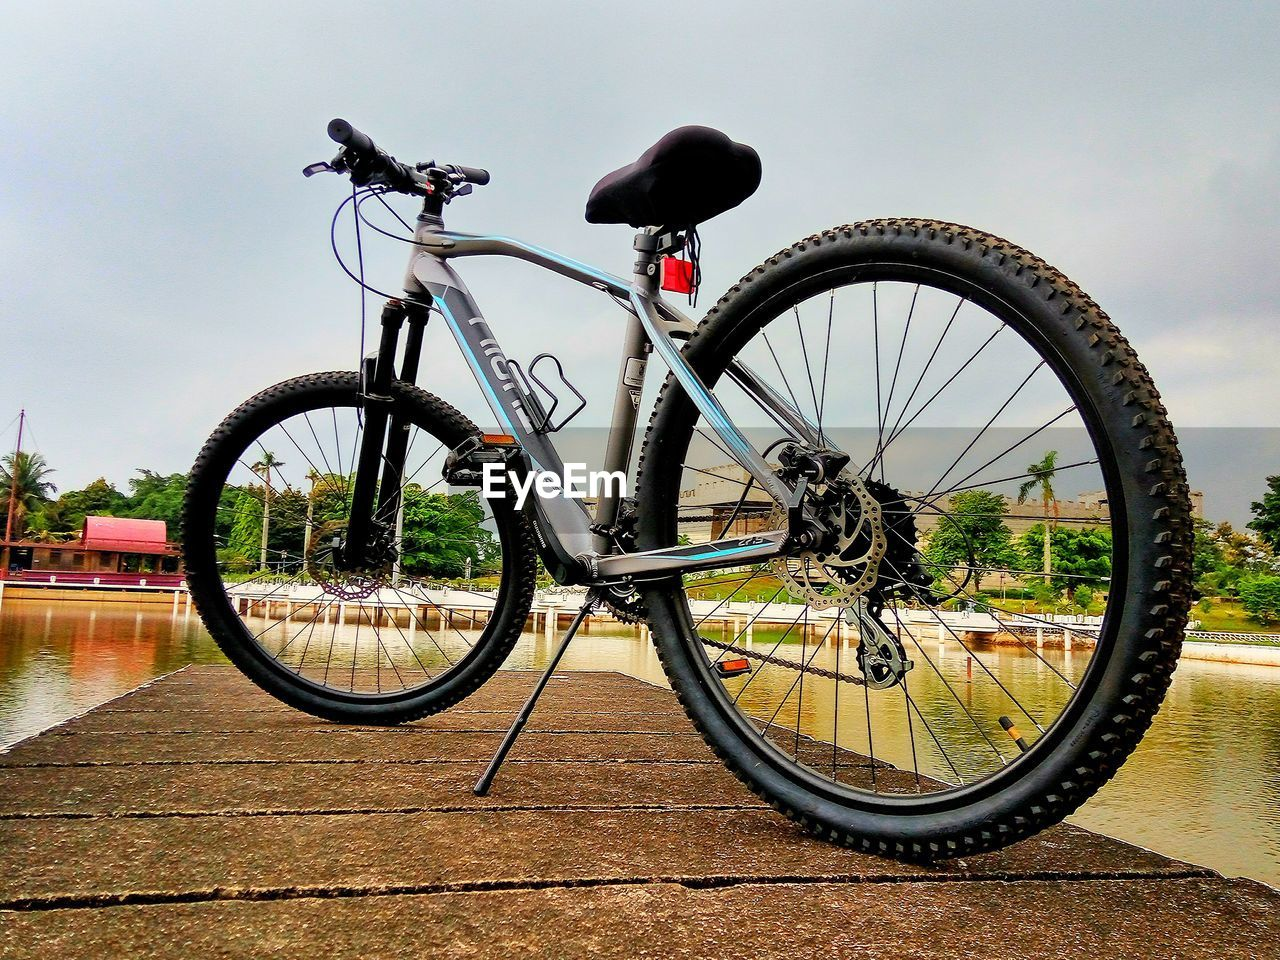 bicycle, transportation, land vehicle, mode of transport, day, stationary, parking, outdoors, no people, bicycle rack, wheel, sky, tire, nature, close-up